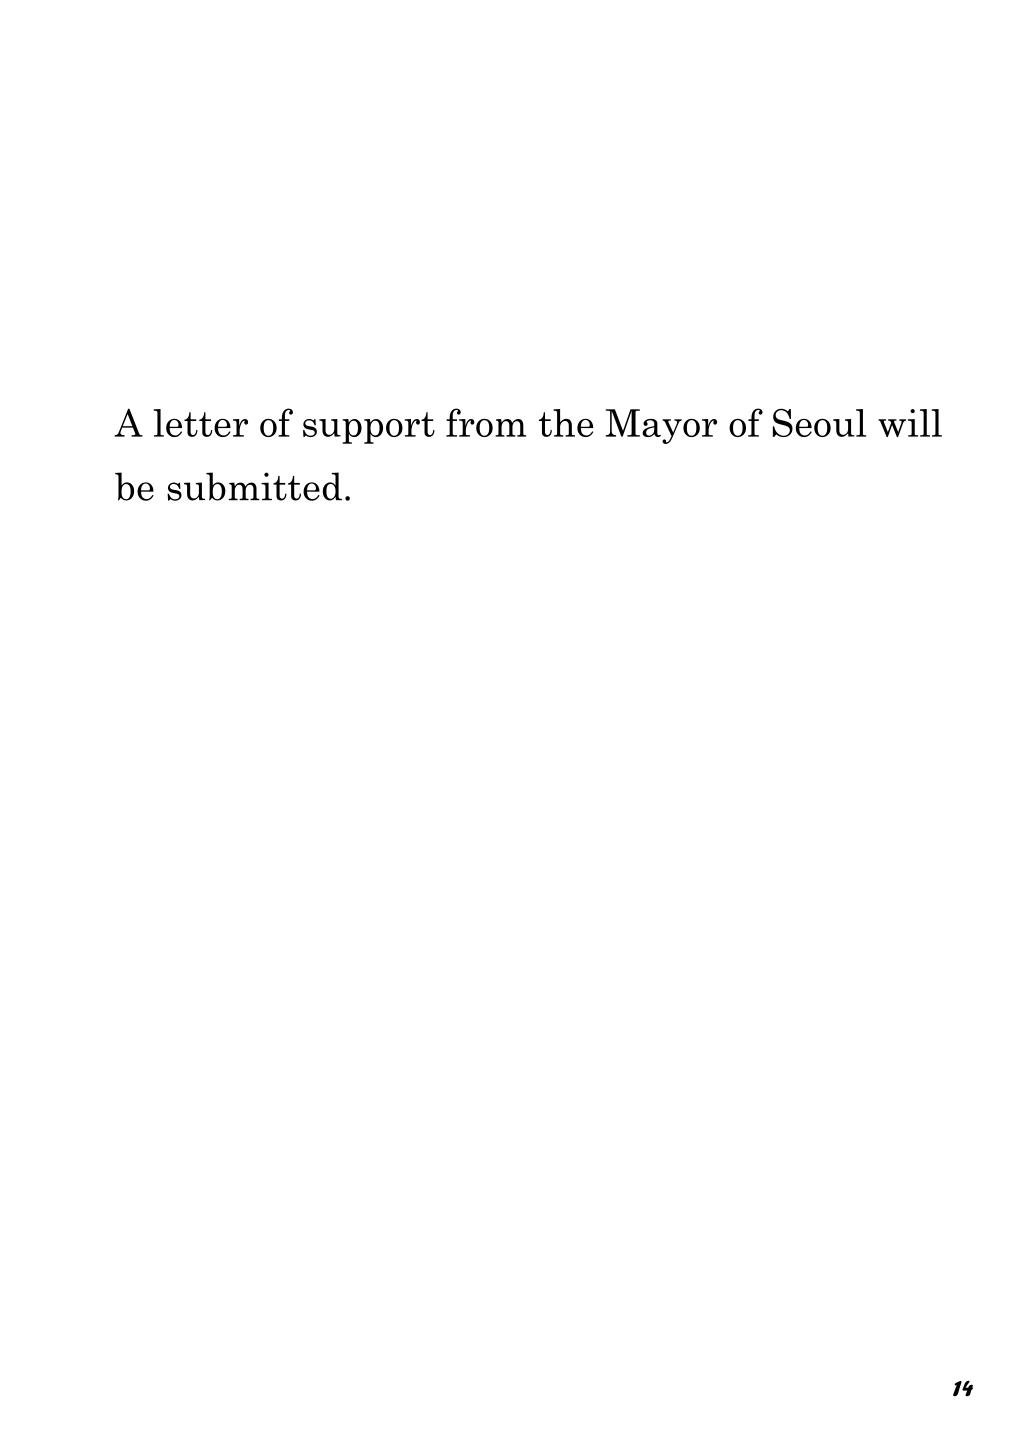 A letter of support from the Mayor of Seoul will be submitted.